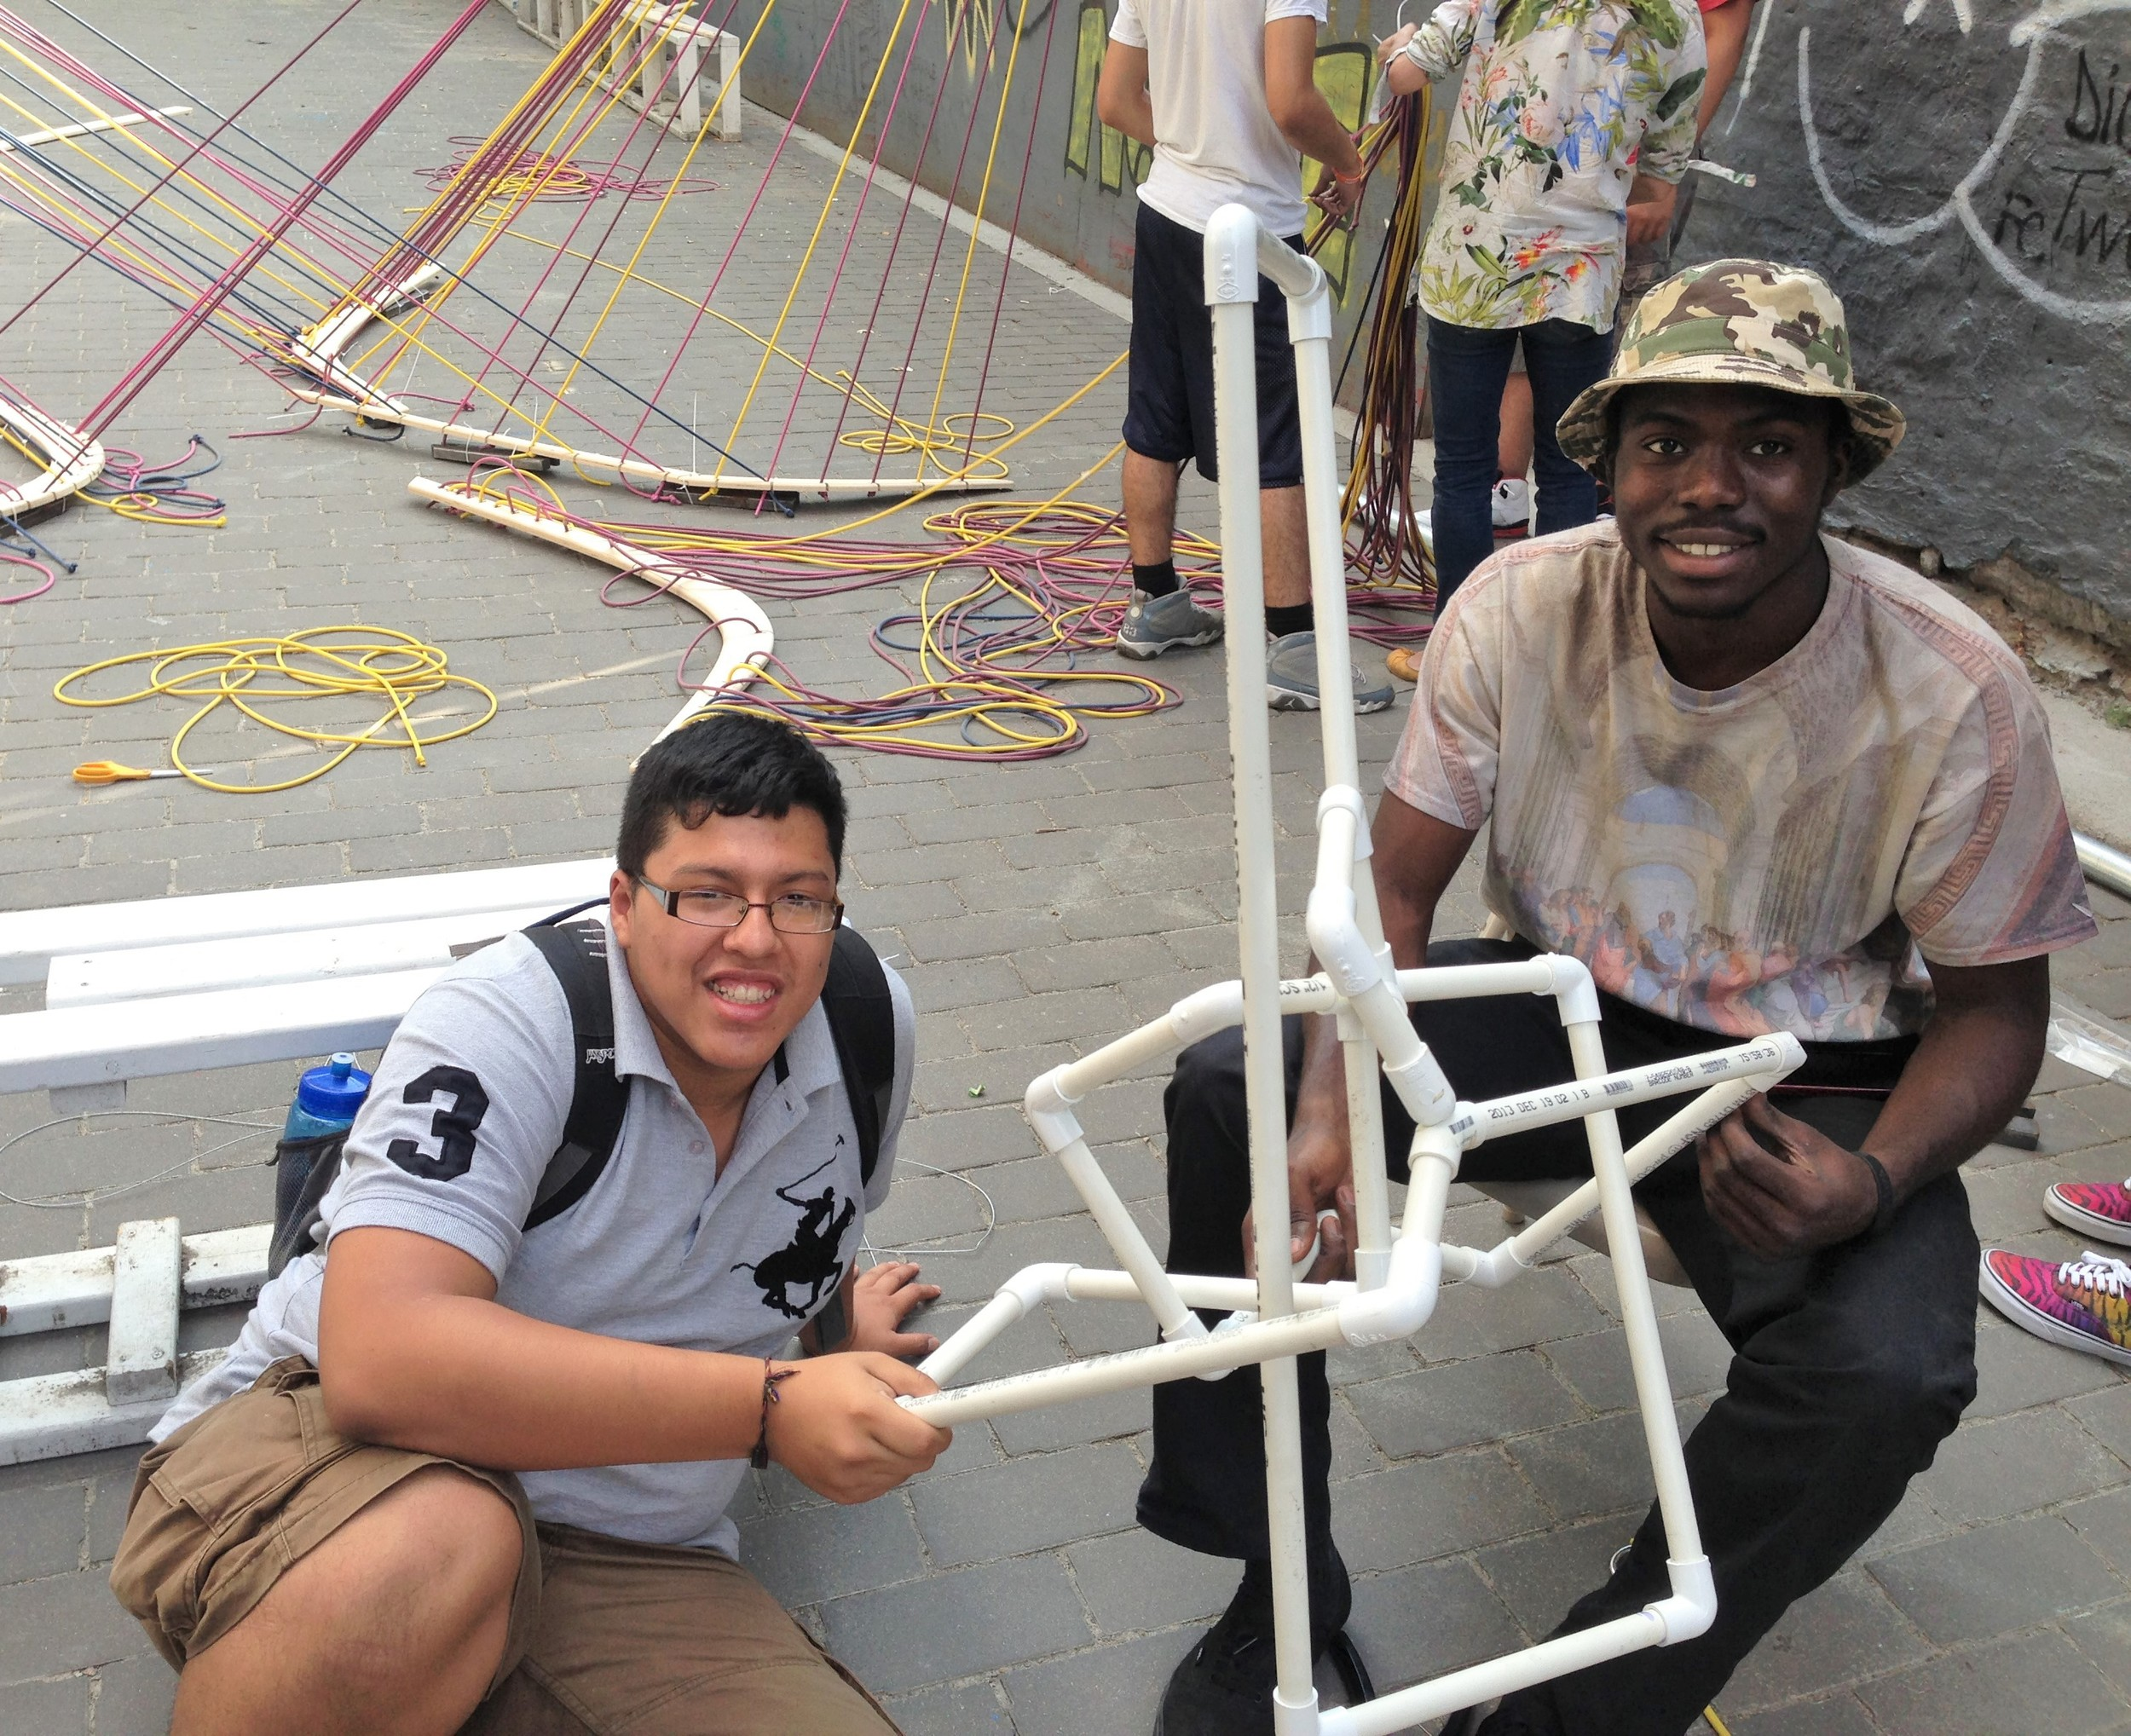 Workshop with Bronx River Art students Michael Murillo and Evangelino Beker